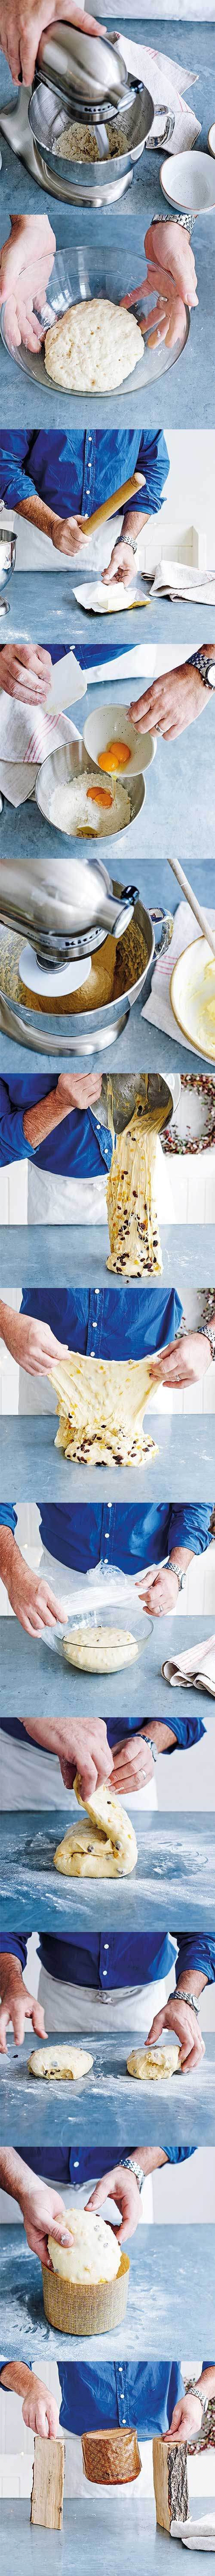 Learn how to make perfect panettone with brilliant baker Richard Bertinet. The sweet, fragrant fruity bread is one of Italy's favourite Christmas treats for a reason.